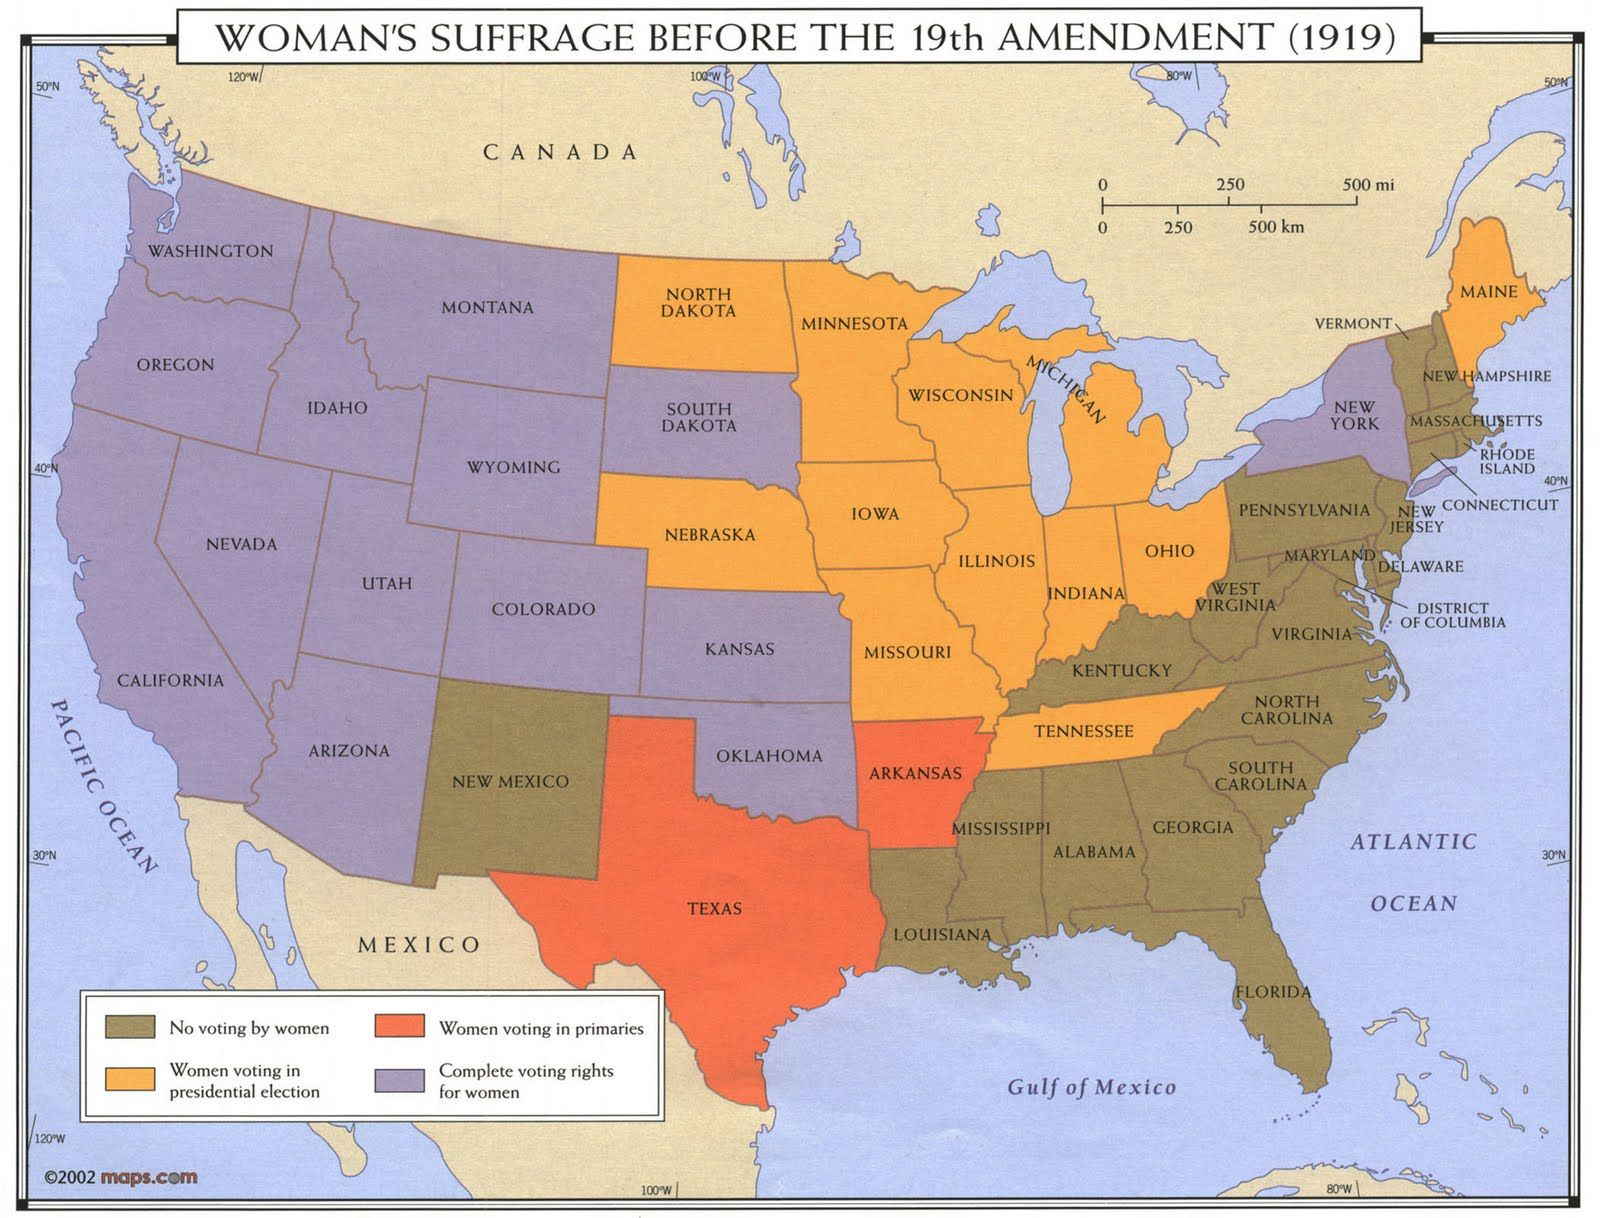 17 best images about suffragette movement universal gis research and map collection women s suffrage